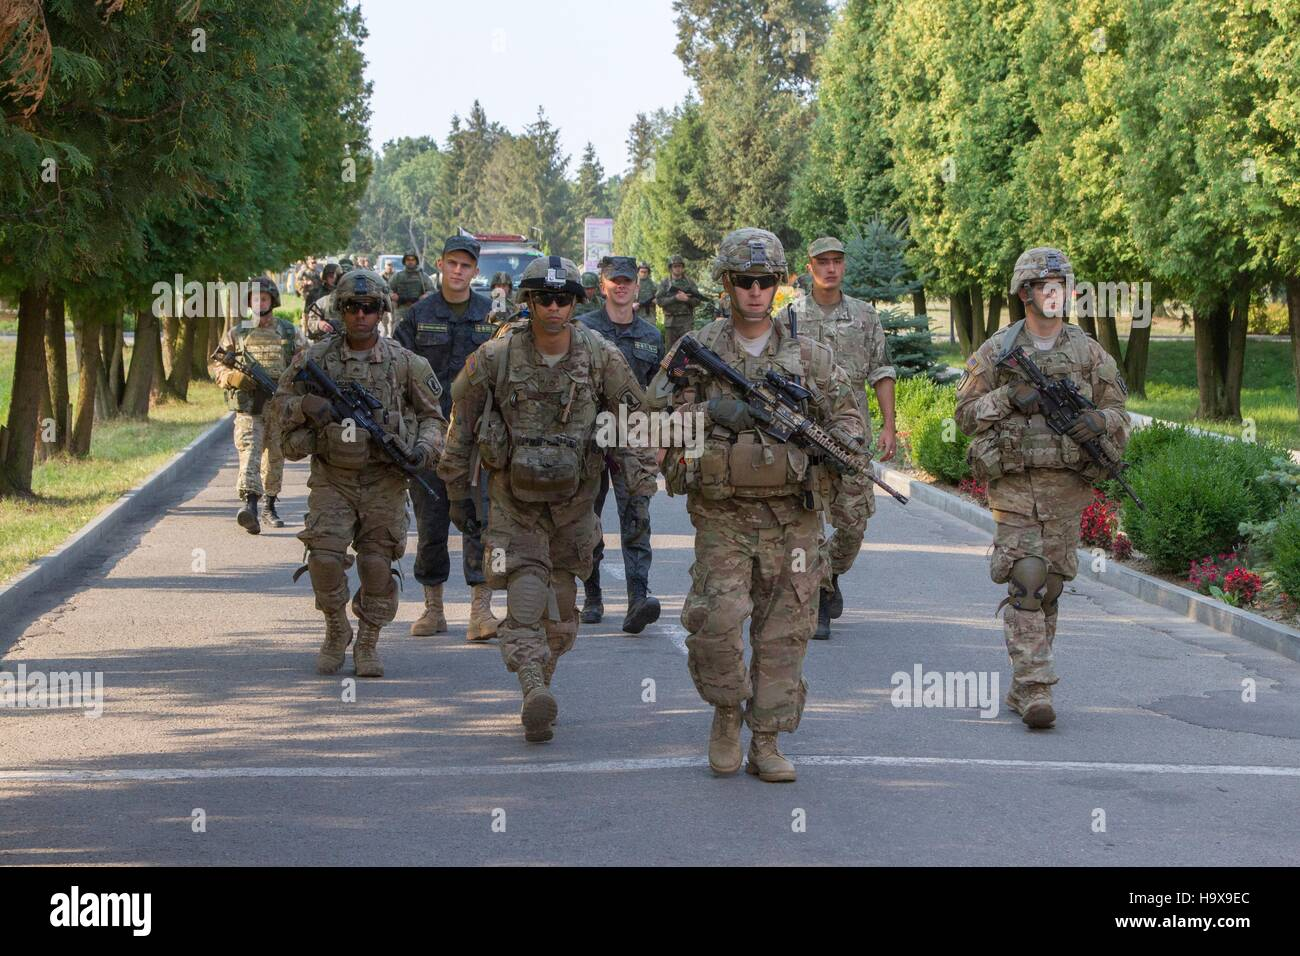 U.S. and Ukrainian soldiers march during Fearless Guardian training August 17, 2015 in Yavoriv, Ukraine. - Stock Image